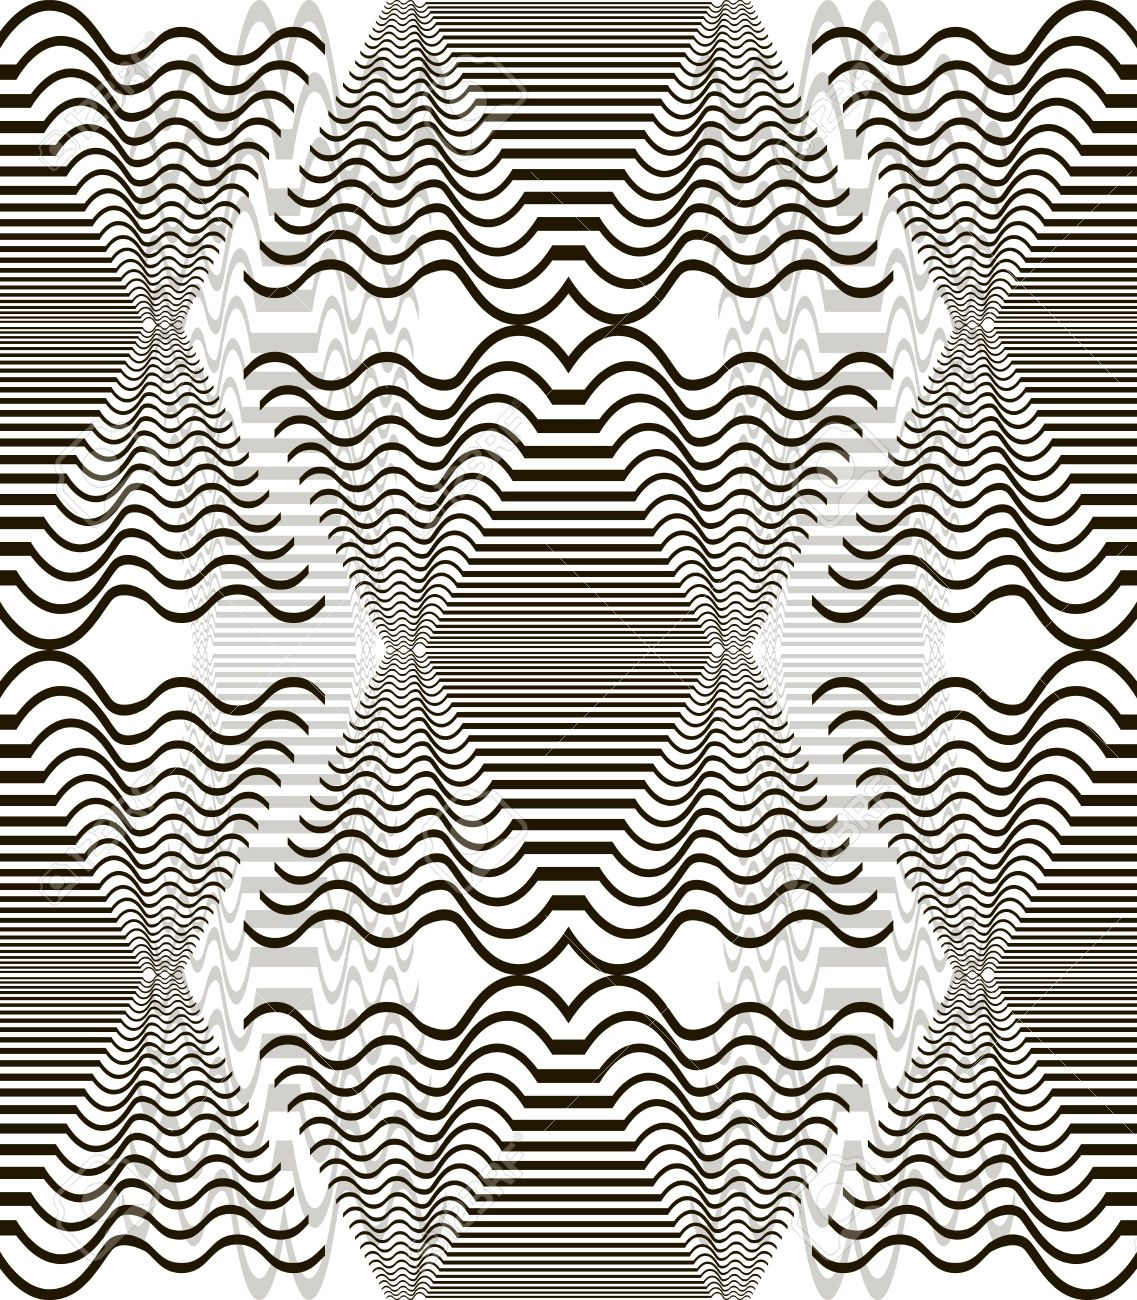 1137x1300 Seamless Pattern Of Wavy Elements. Horizontal Lines Forming